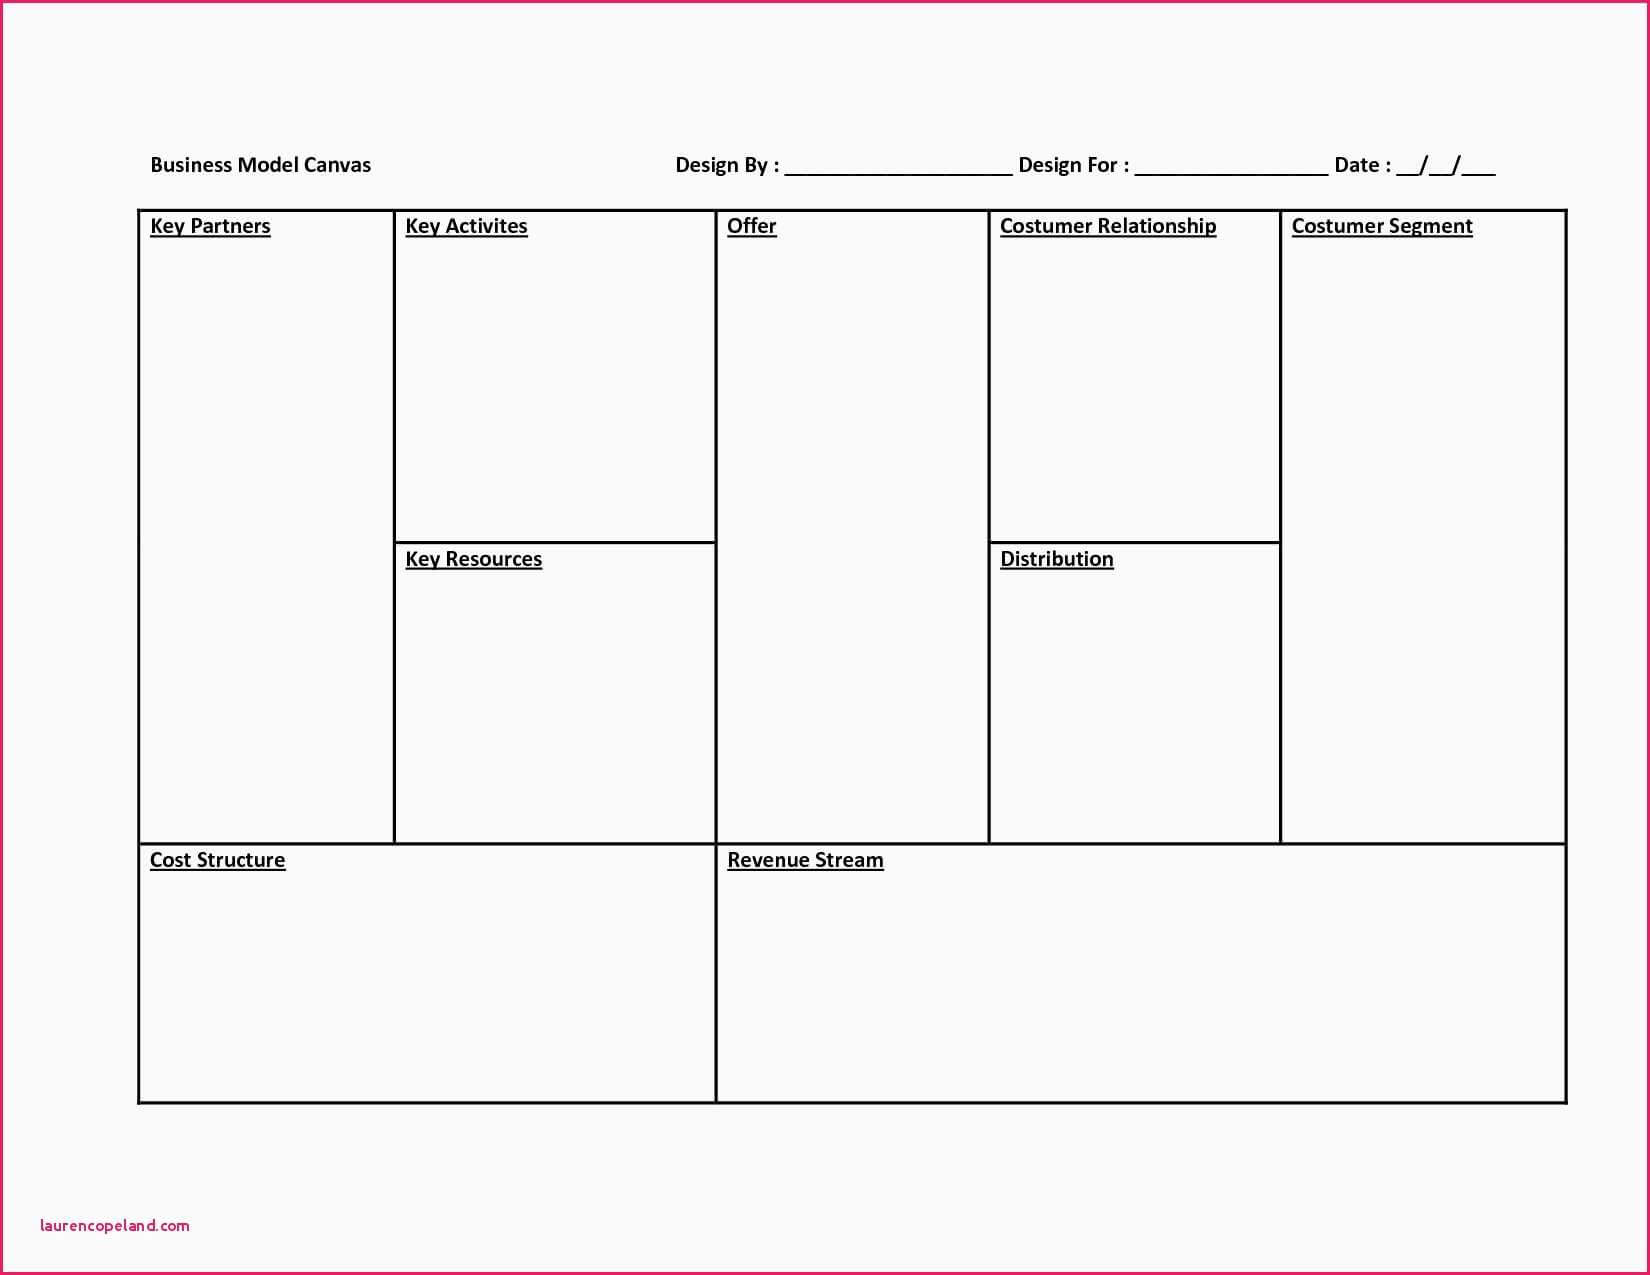 003 Business Model Canvas Template Word Ideas Excel Oder In Business Canvas Word Template